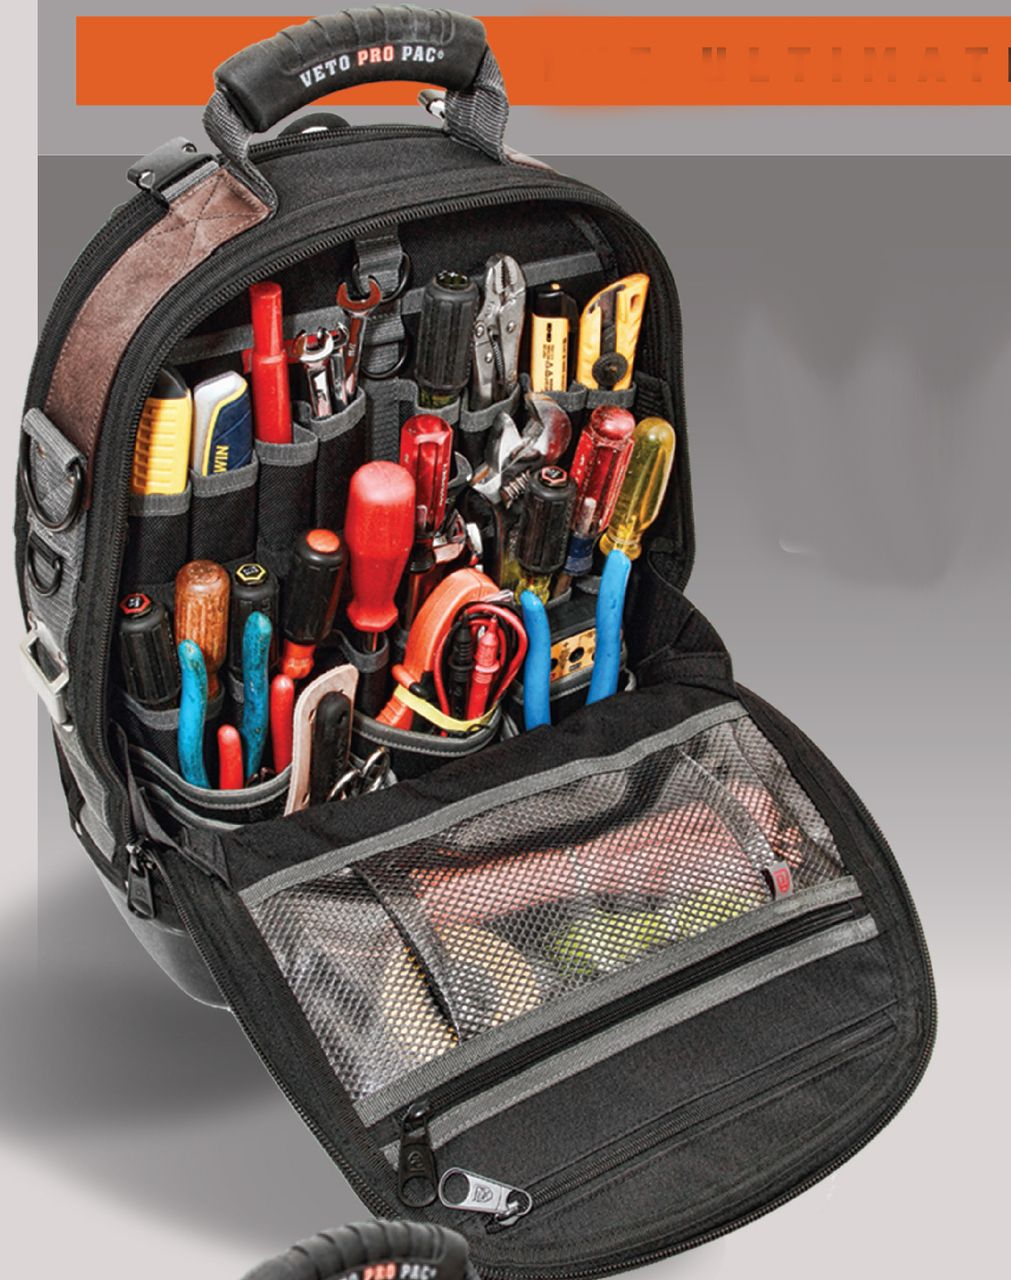 Large Capacity Waterproof Tool Bag Electrician Plumber Portable Screws Drill Bit Storage Pouch Hand Repair Tool Organizer Case Tool Organizers